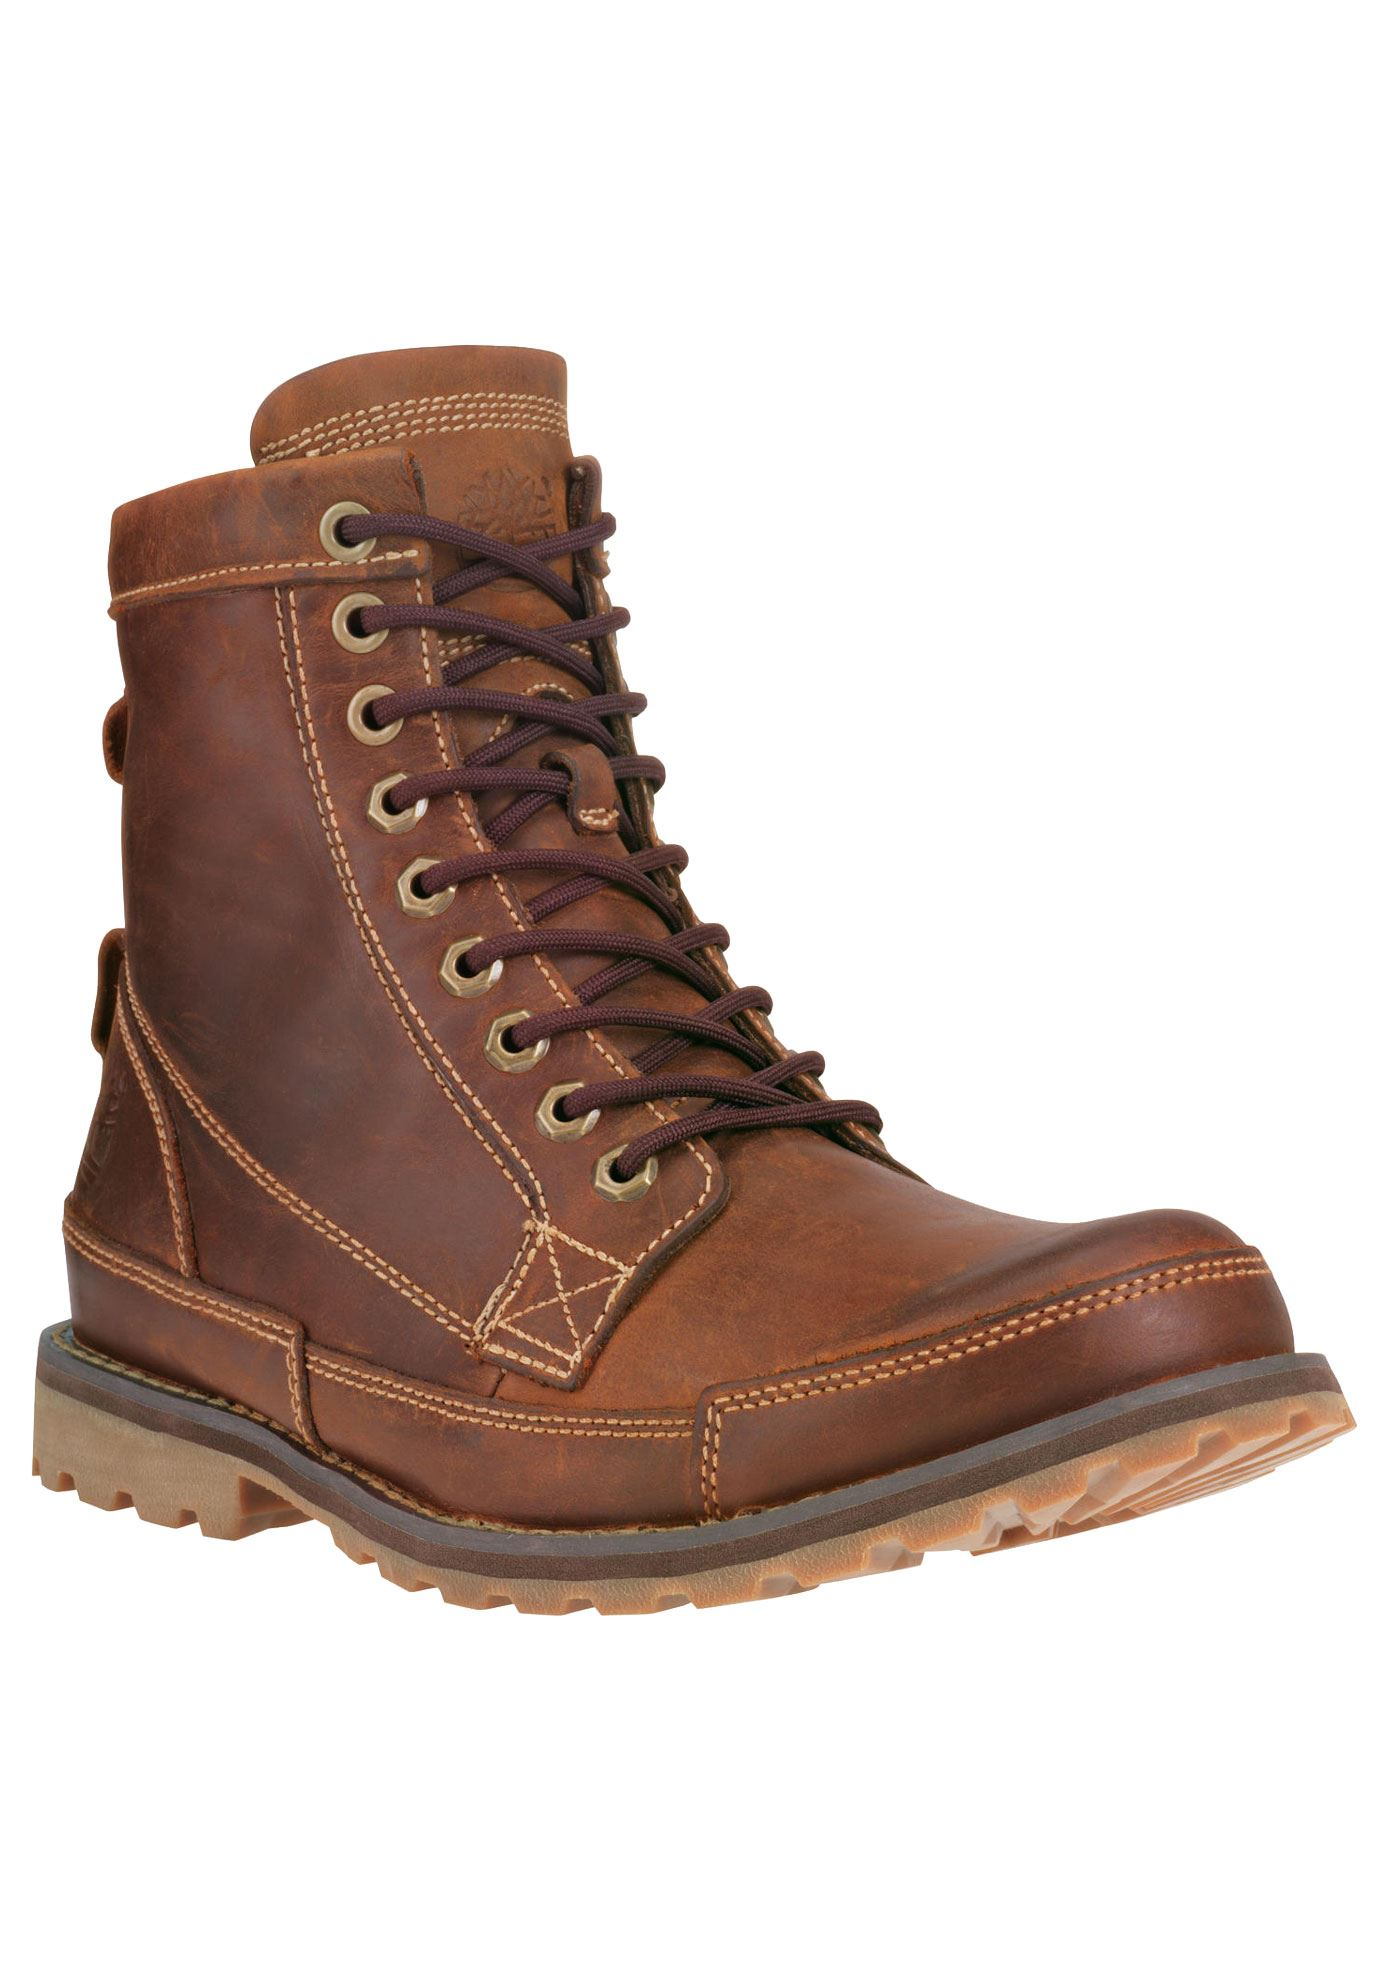 c2a9a915f61f Timberland® Earthkeepers® Original Leather Boot